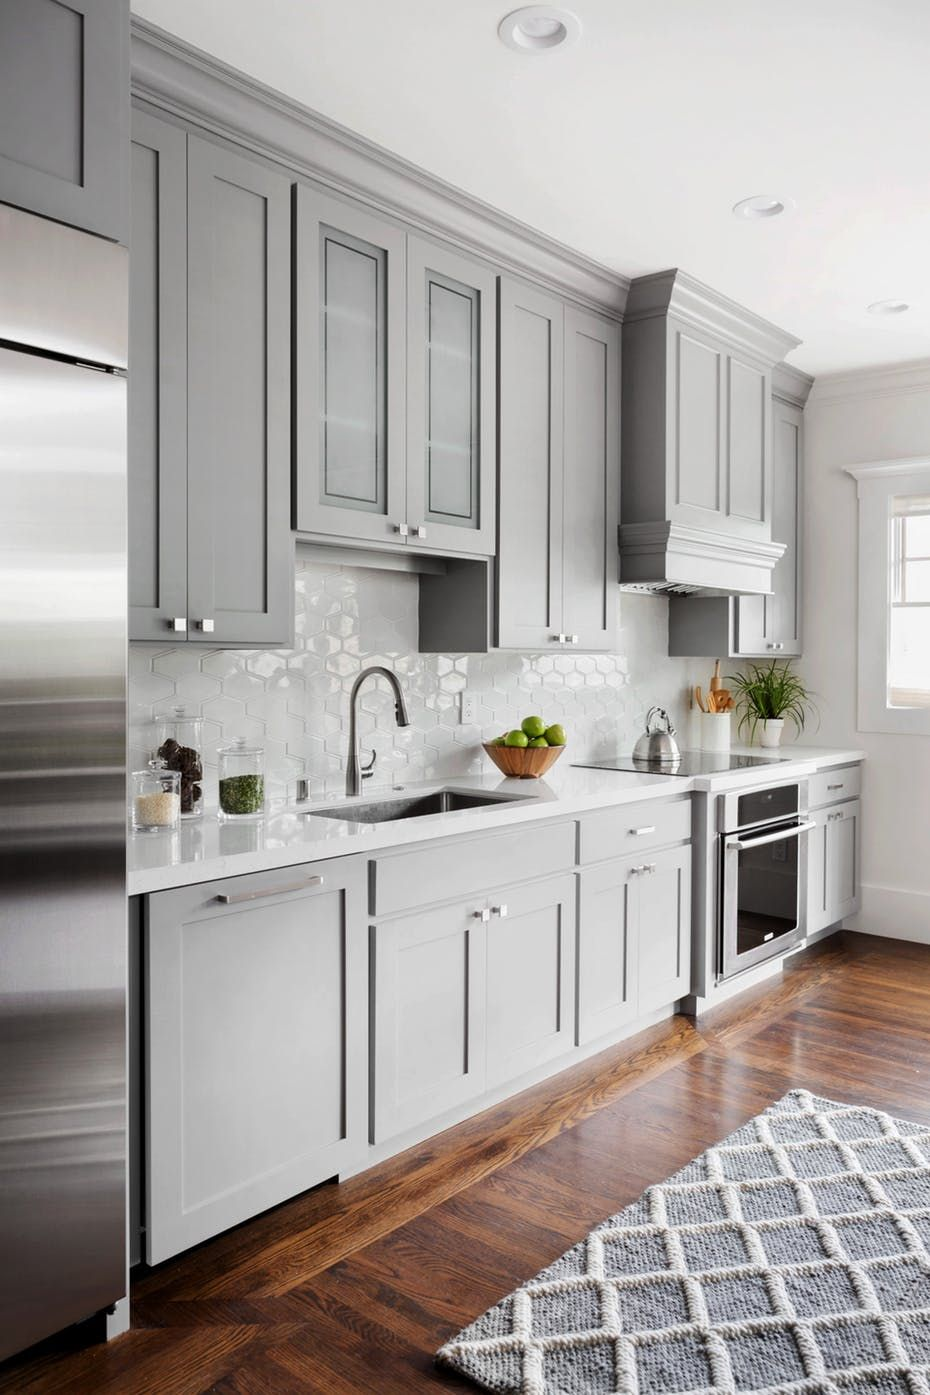 The Avenues Arts and Crafts Kitchen | house nel 2019 | Cucine ...